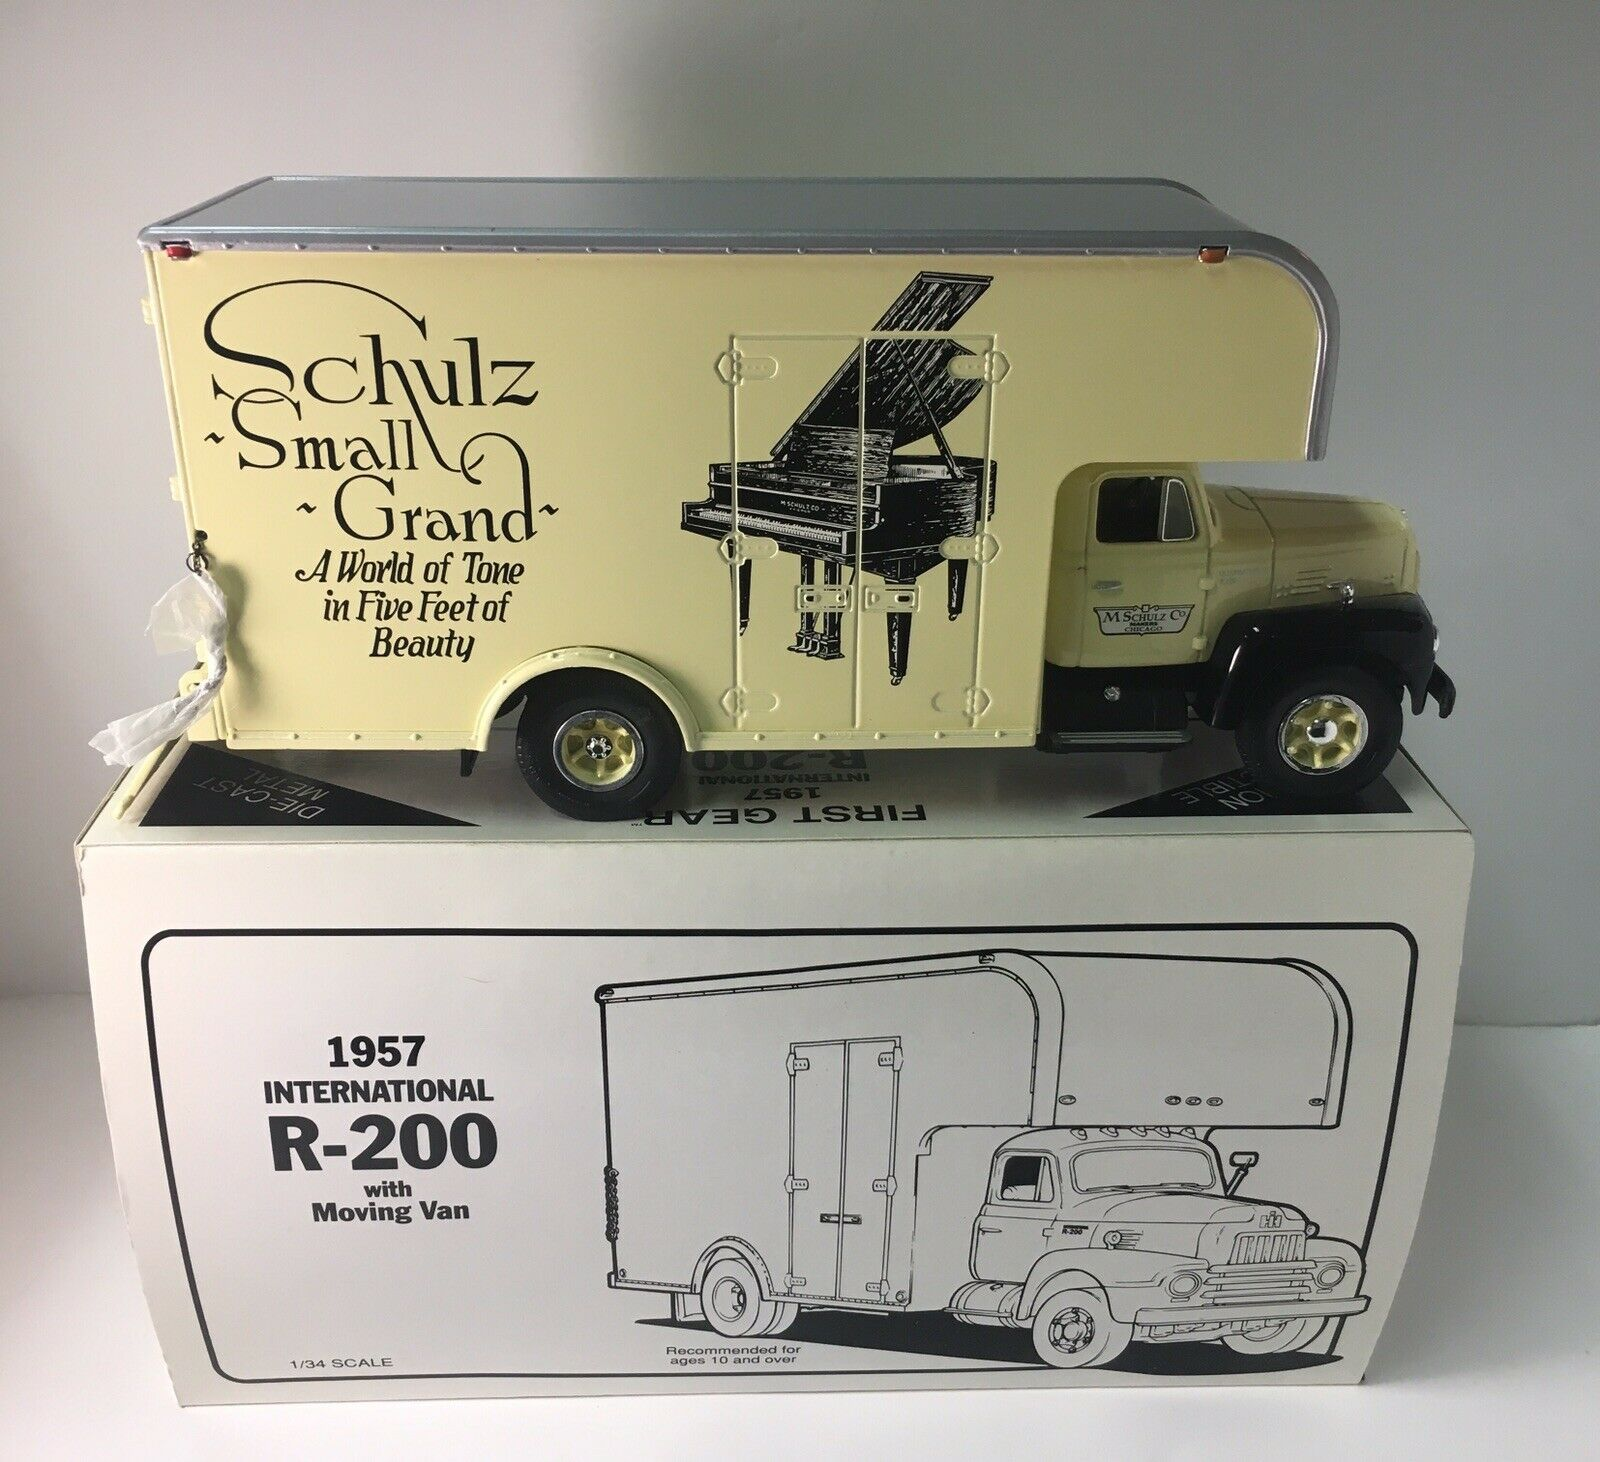 First Gear 1957 International R-200 Moving Van M. SCHULZ Co. PIANOS Nº 19-1332